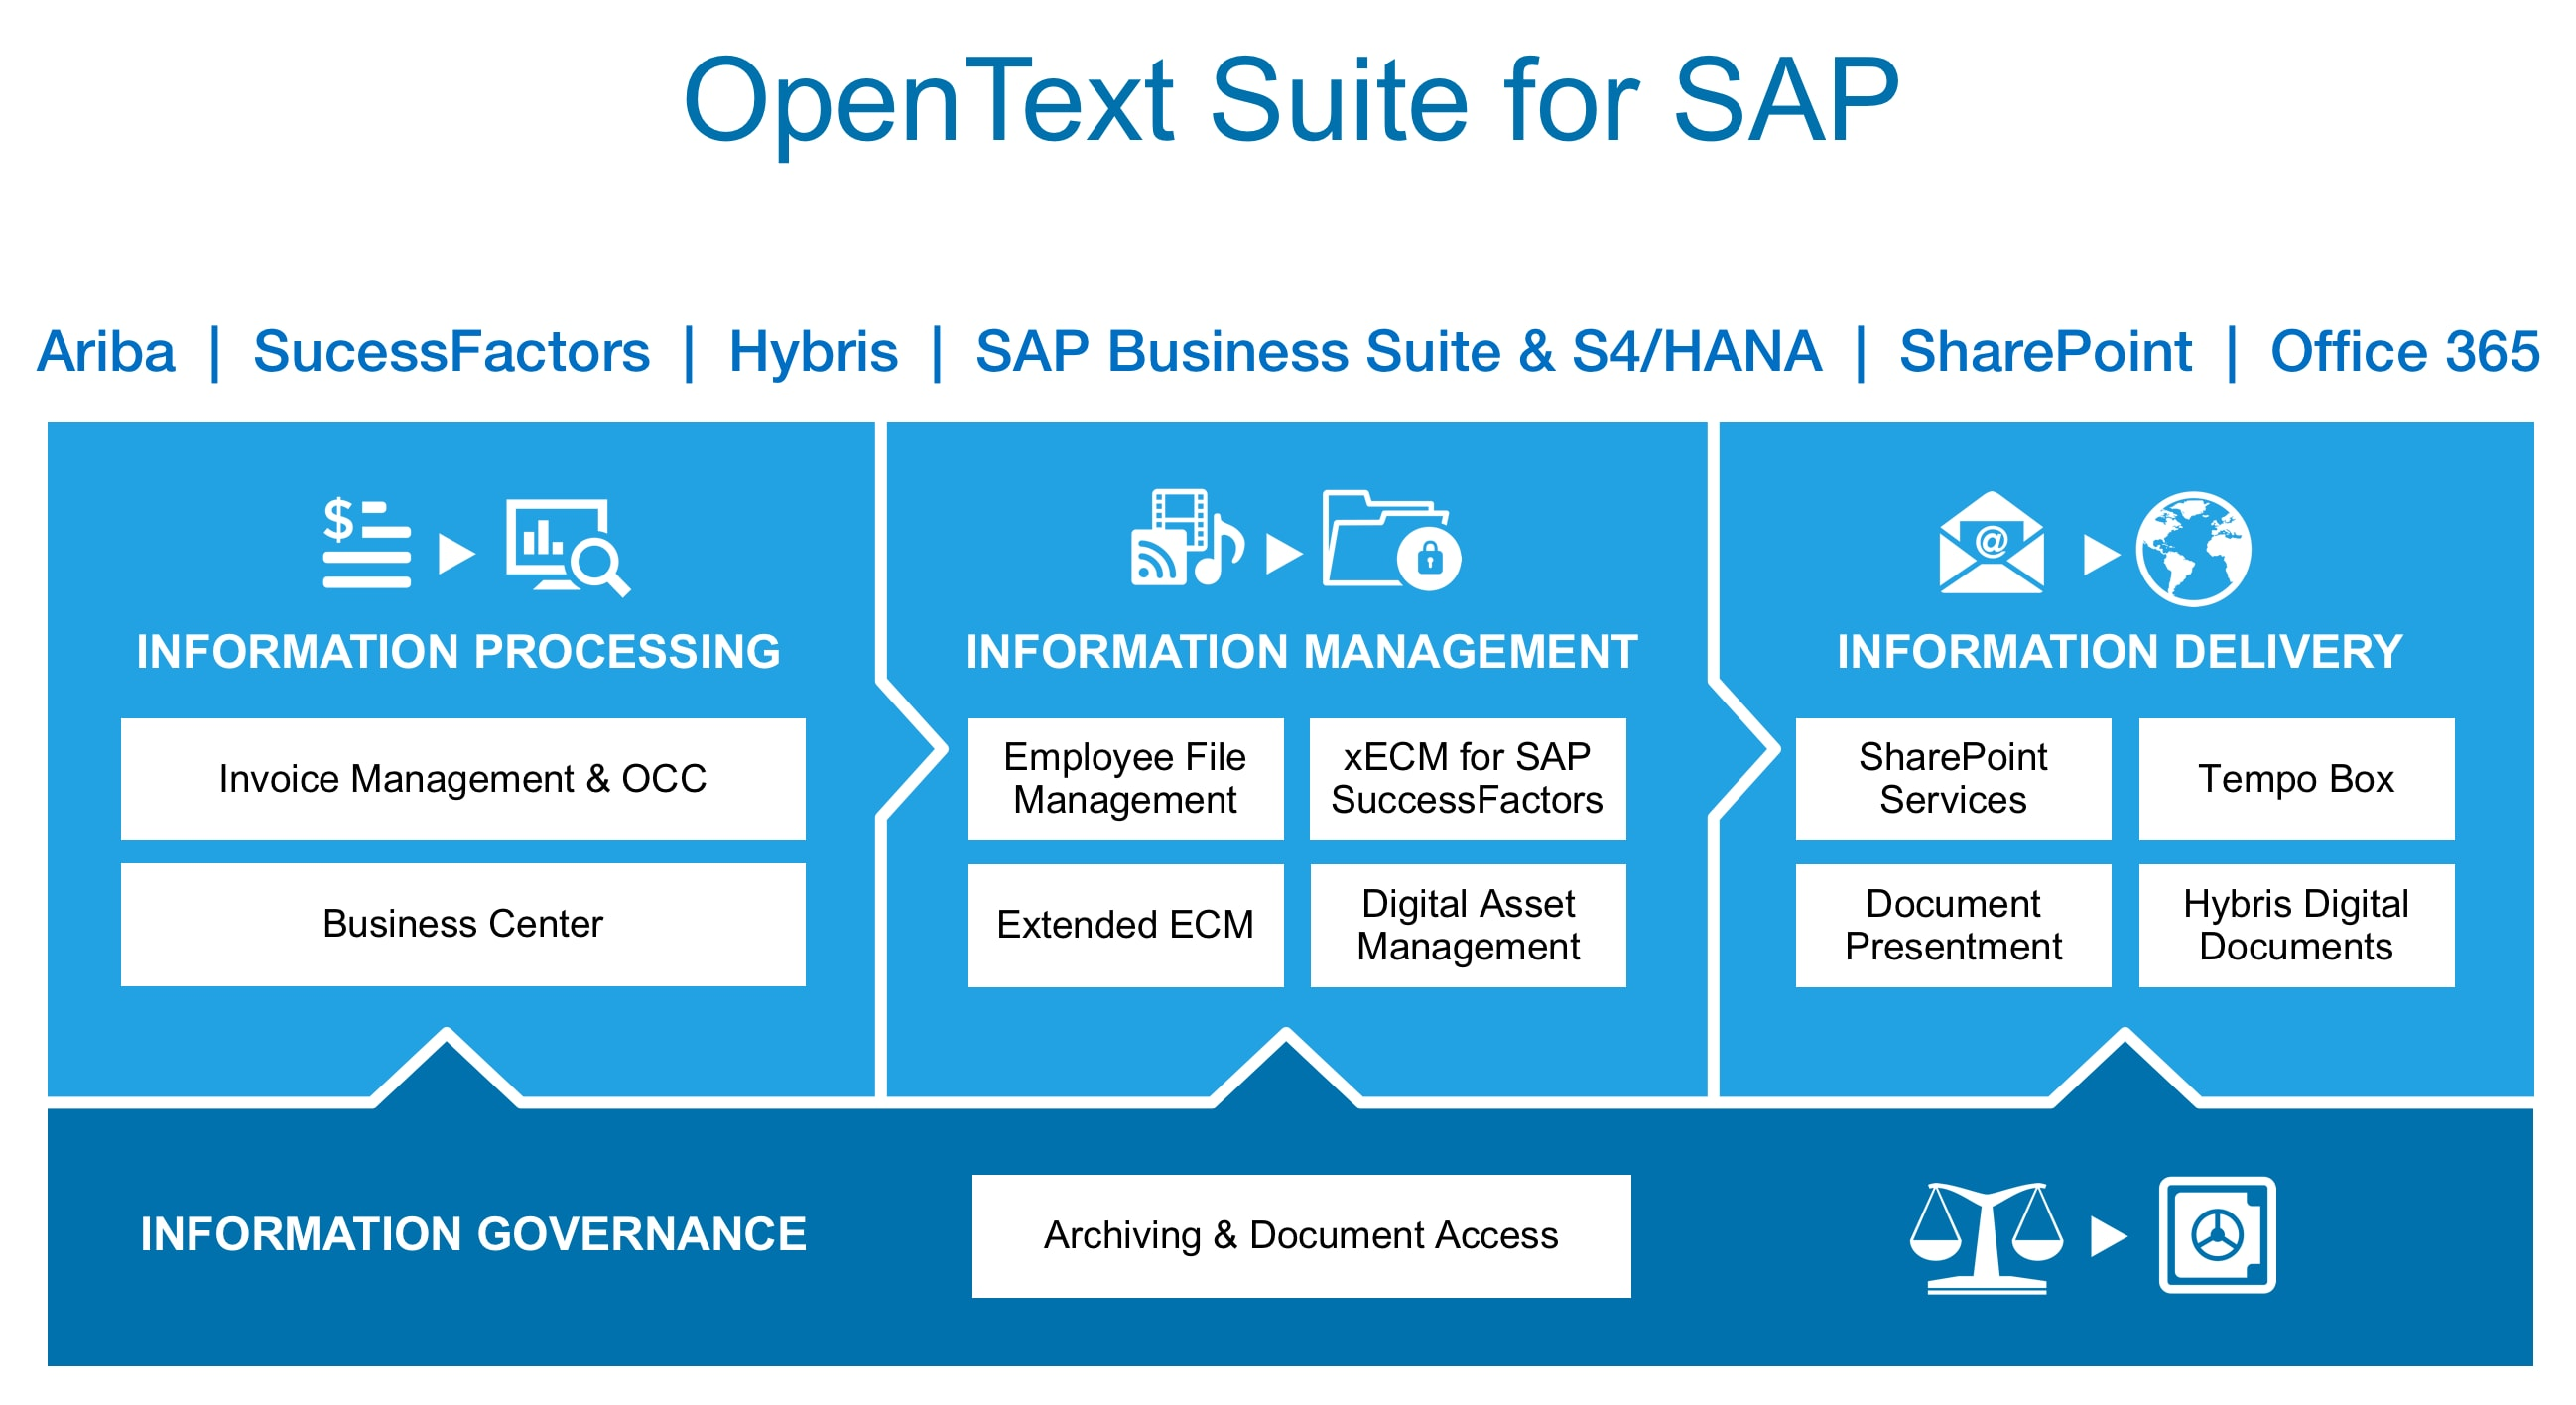 OpenText suite for SAP